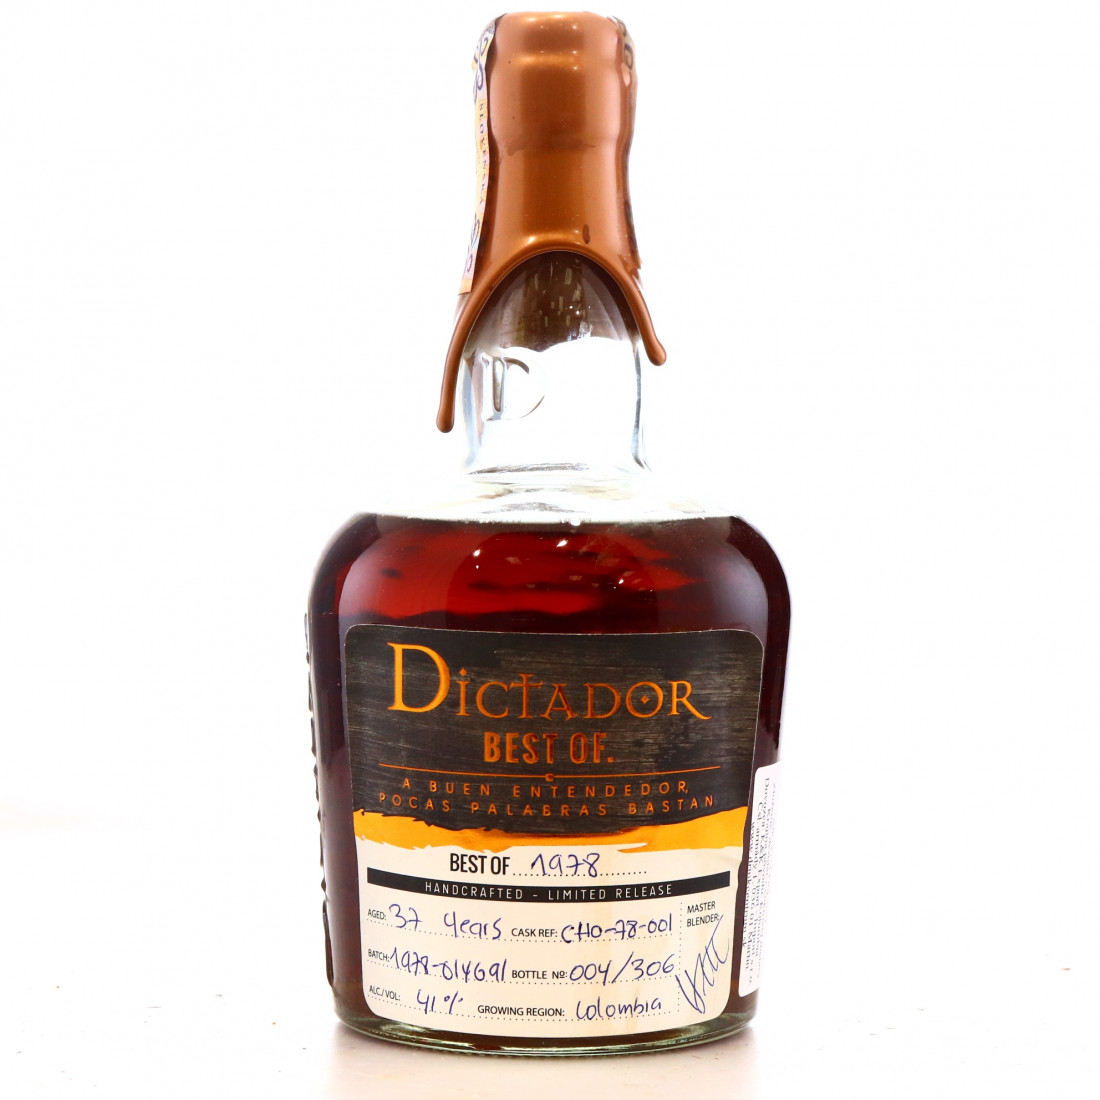 Dictador Best of 1978 37 Year Old